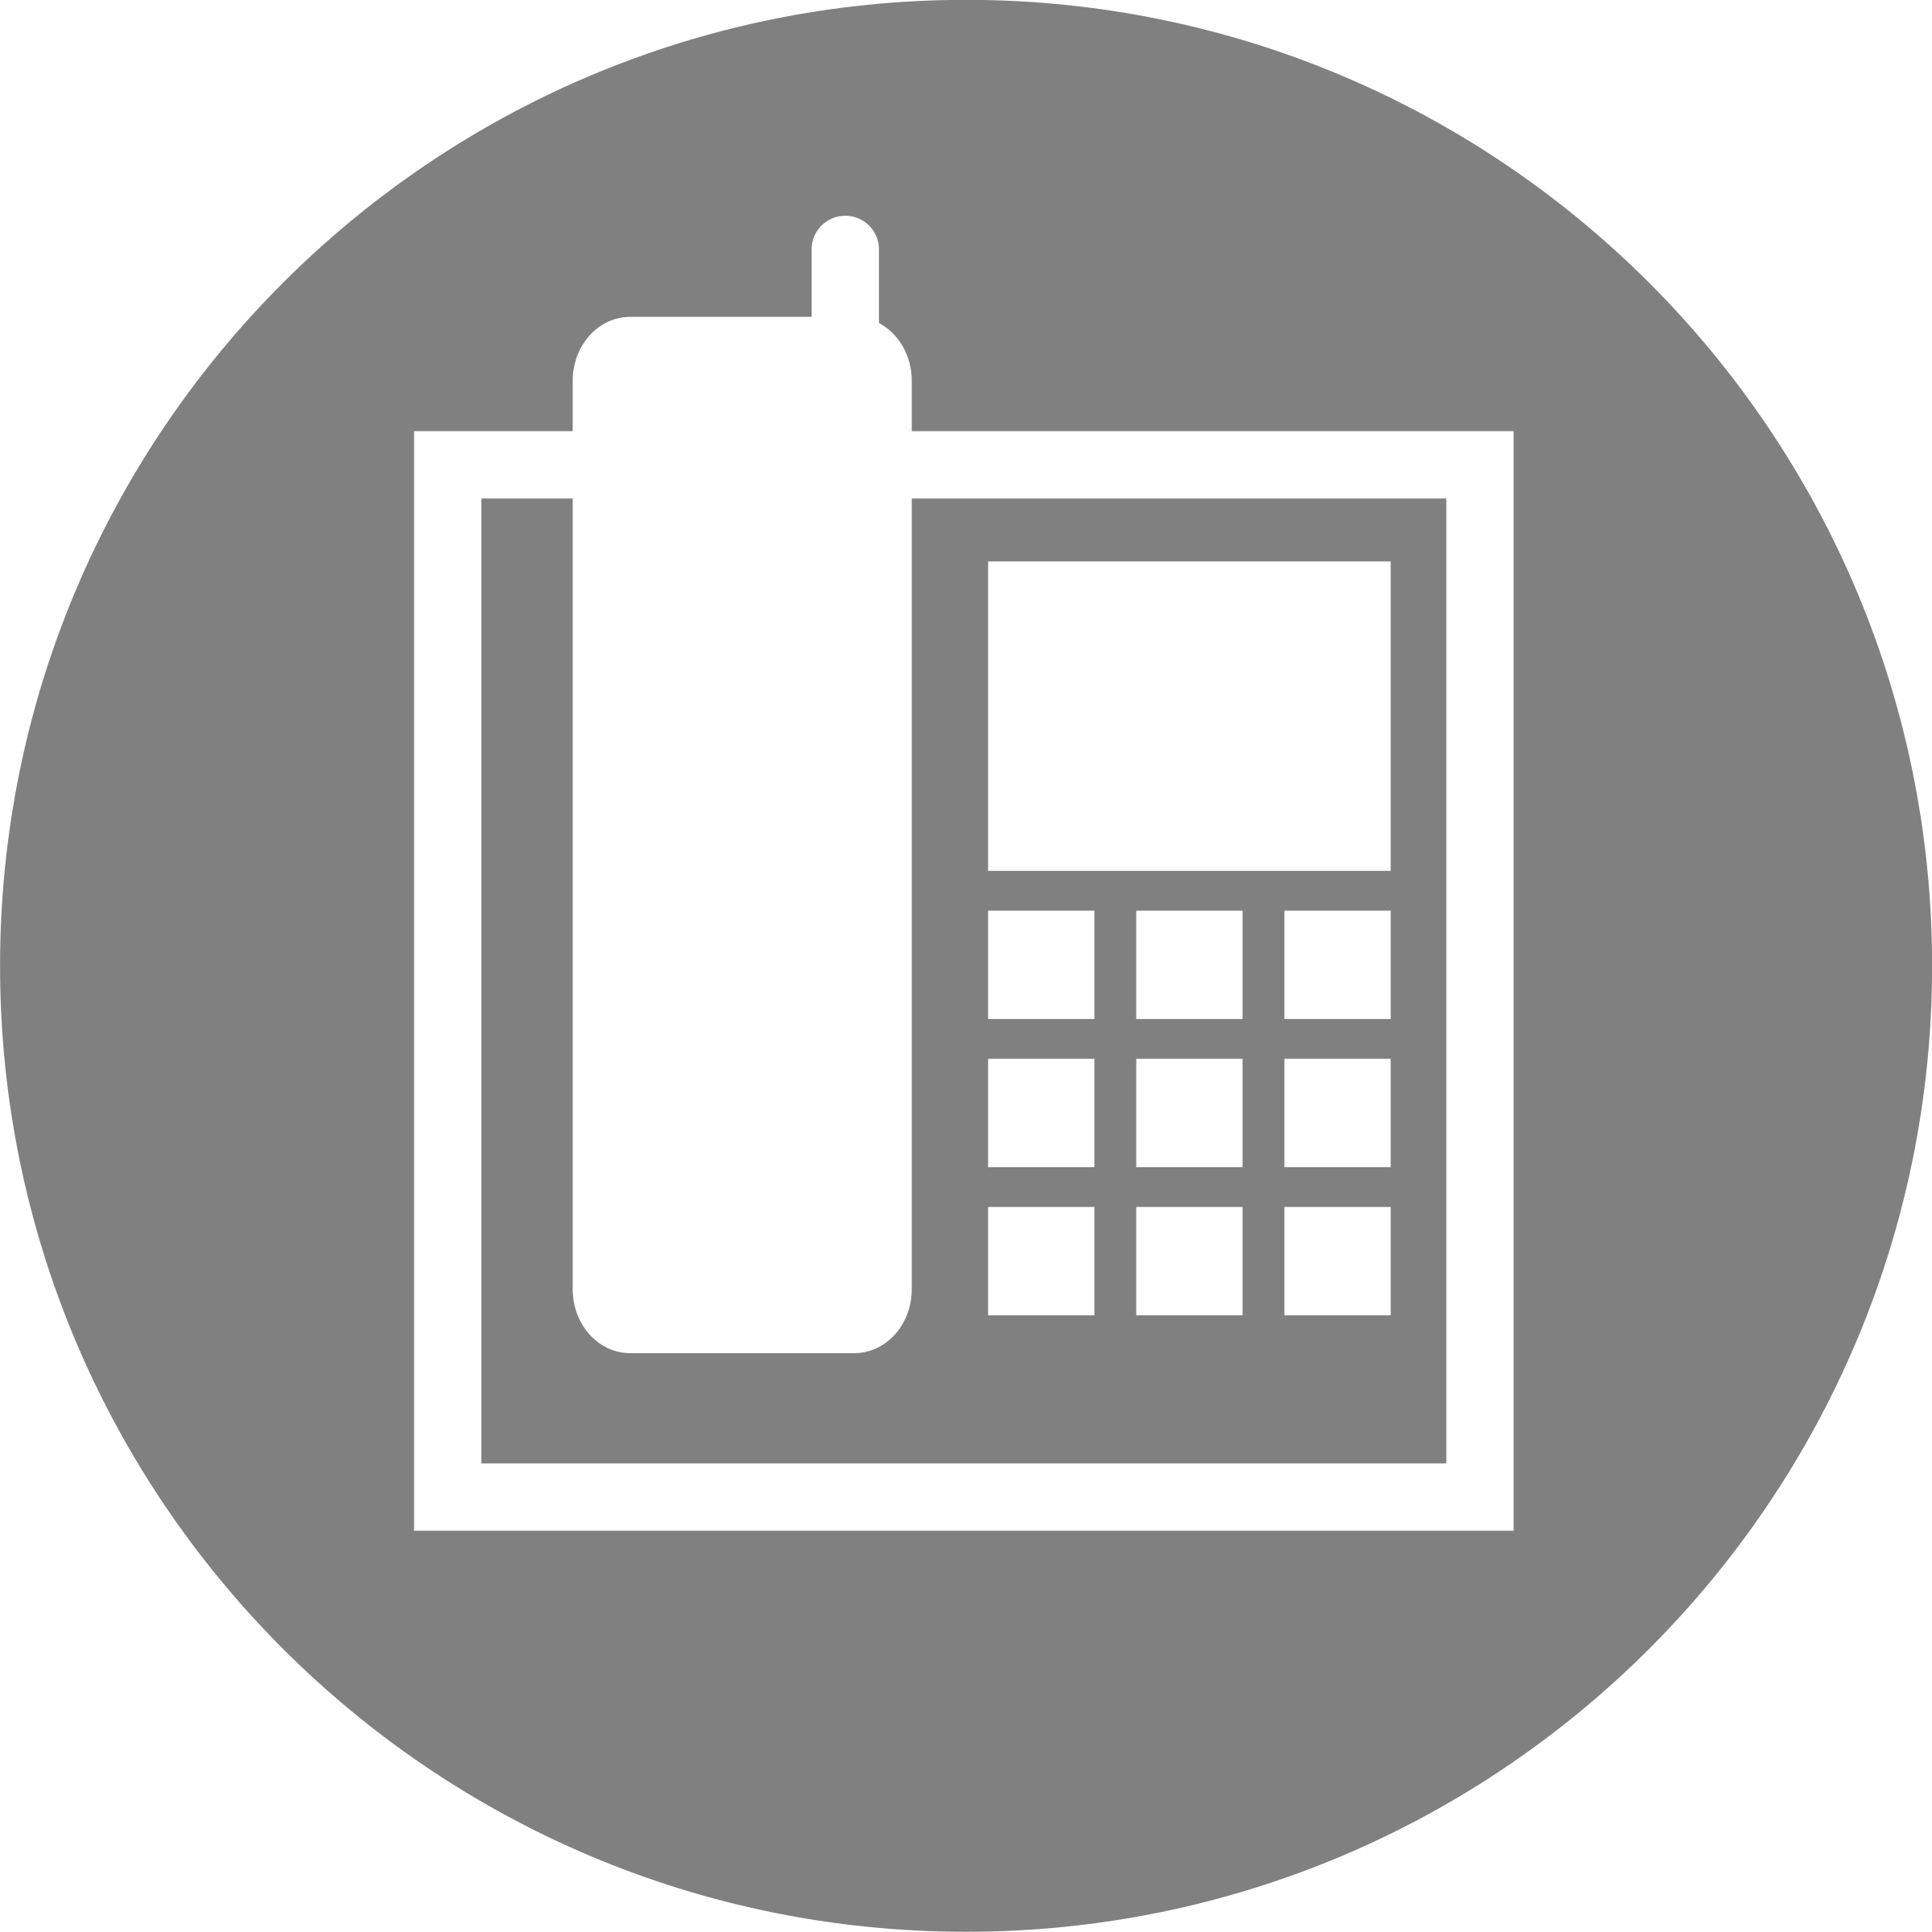 Phone big image png. Telephone clipart telephone icon